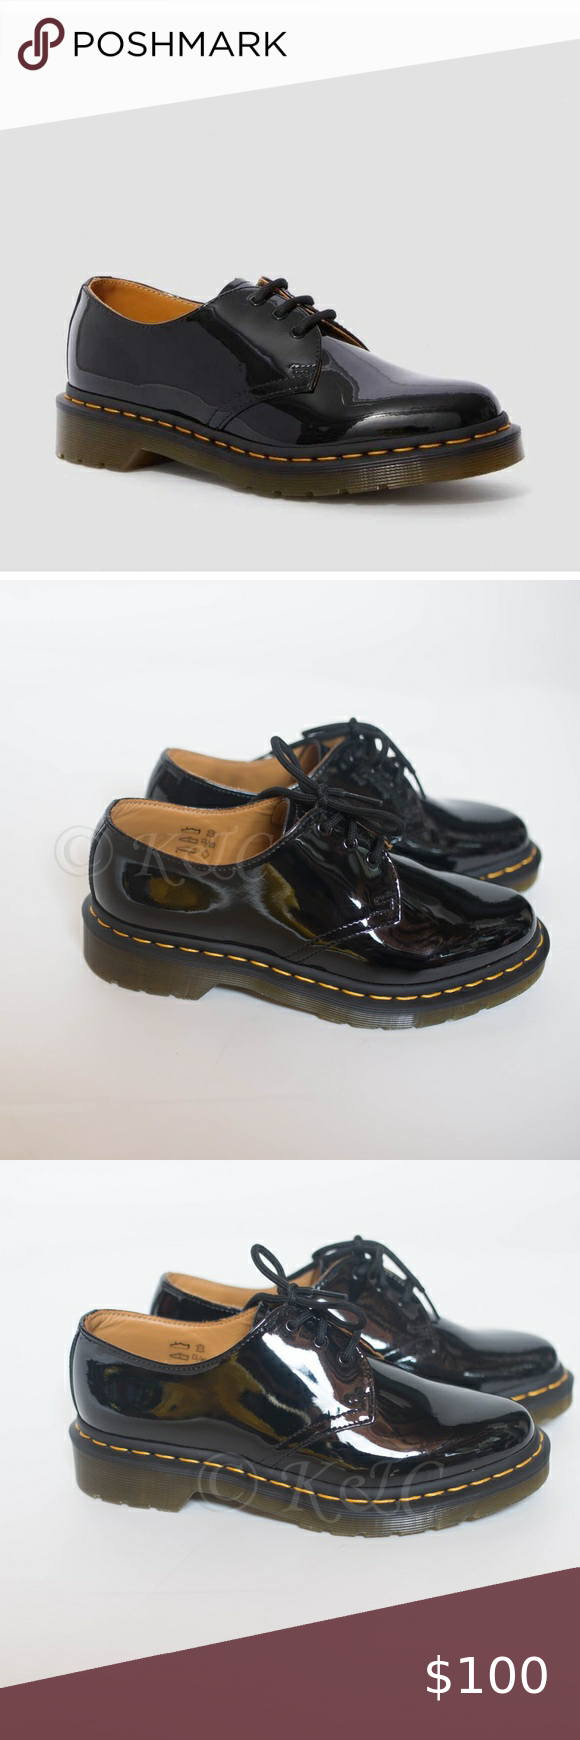 Dr Martens 1461 Patent Women S Leather Oxford 7 8 In 2020 Leather Oxfords Women Leather Oxfords Leather Women